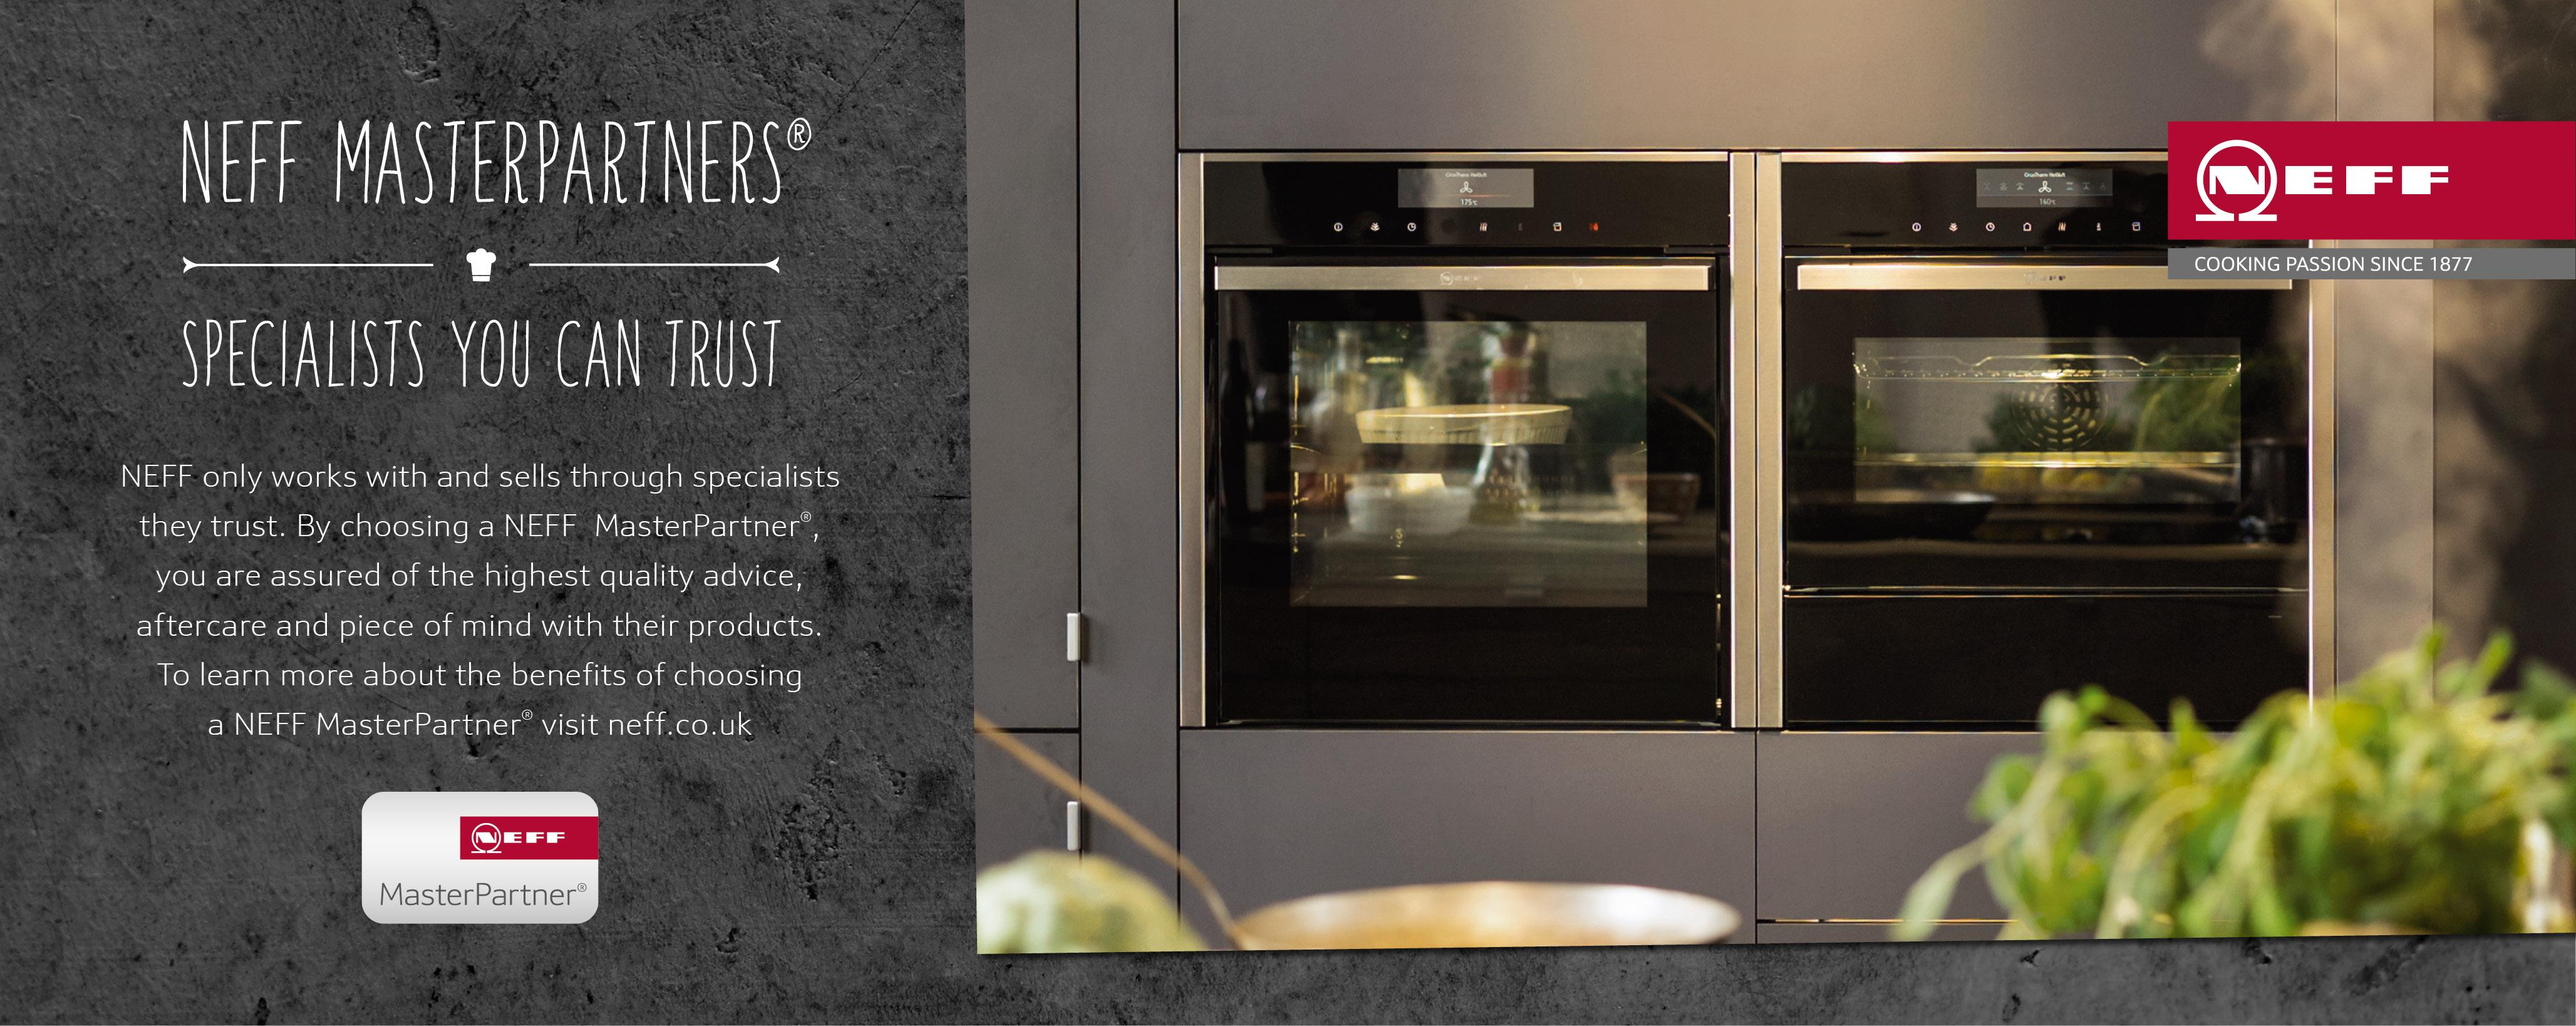 electric ovens uk, electric cooker hob